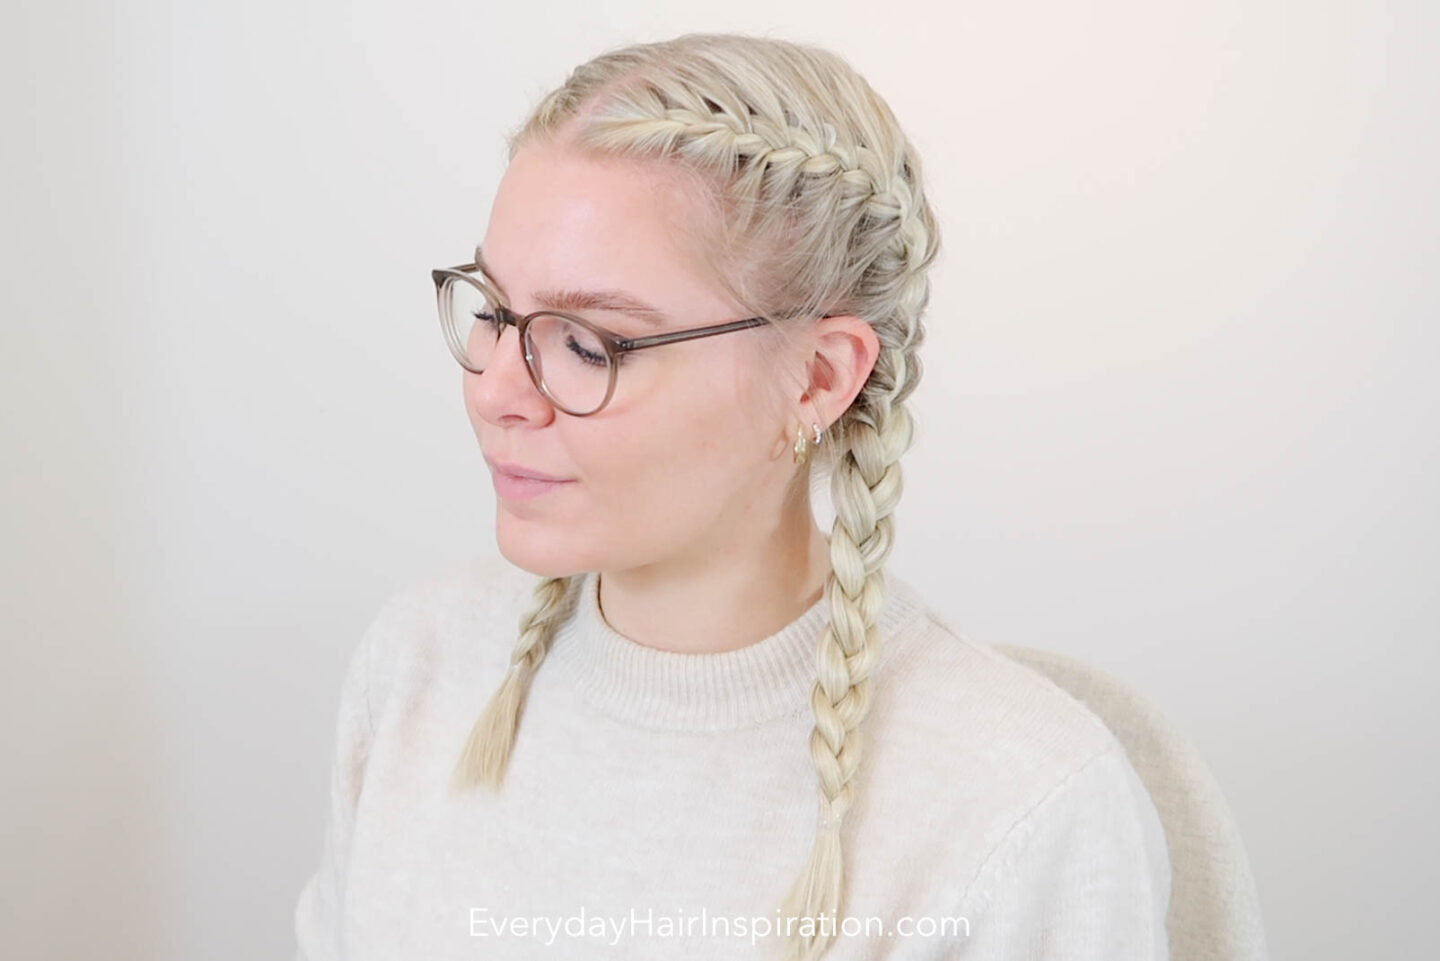 Young blonde woman, sitting in the middle with her head to the side, so you can see the double french braid in her hair.